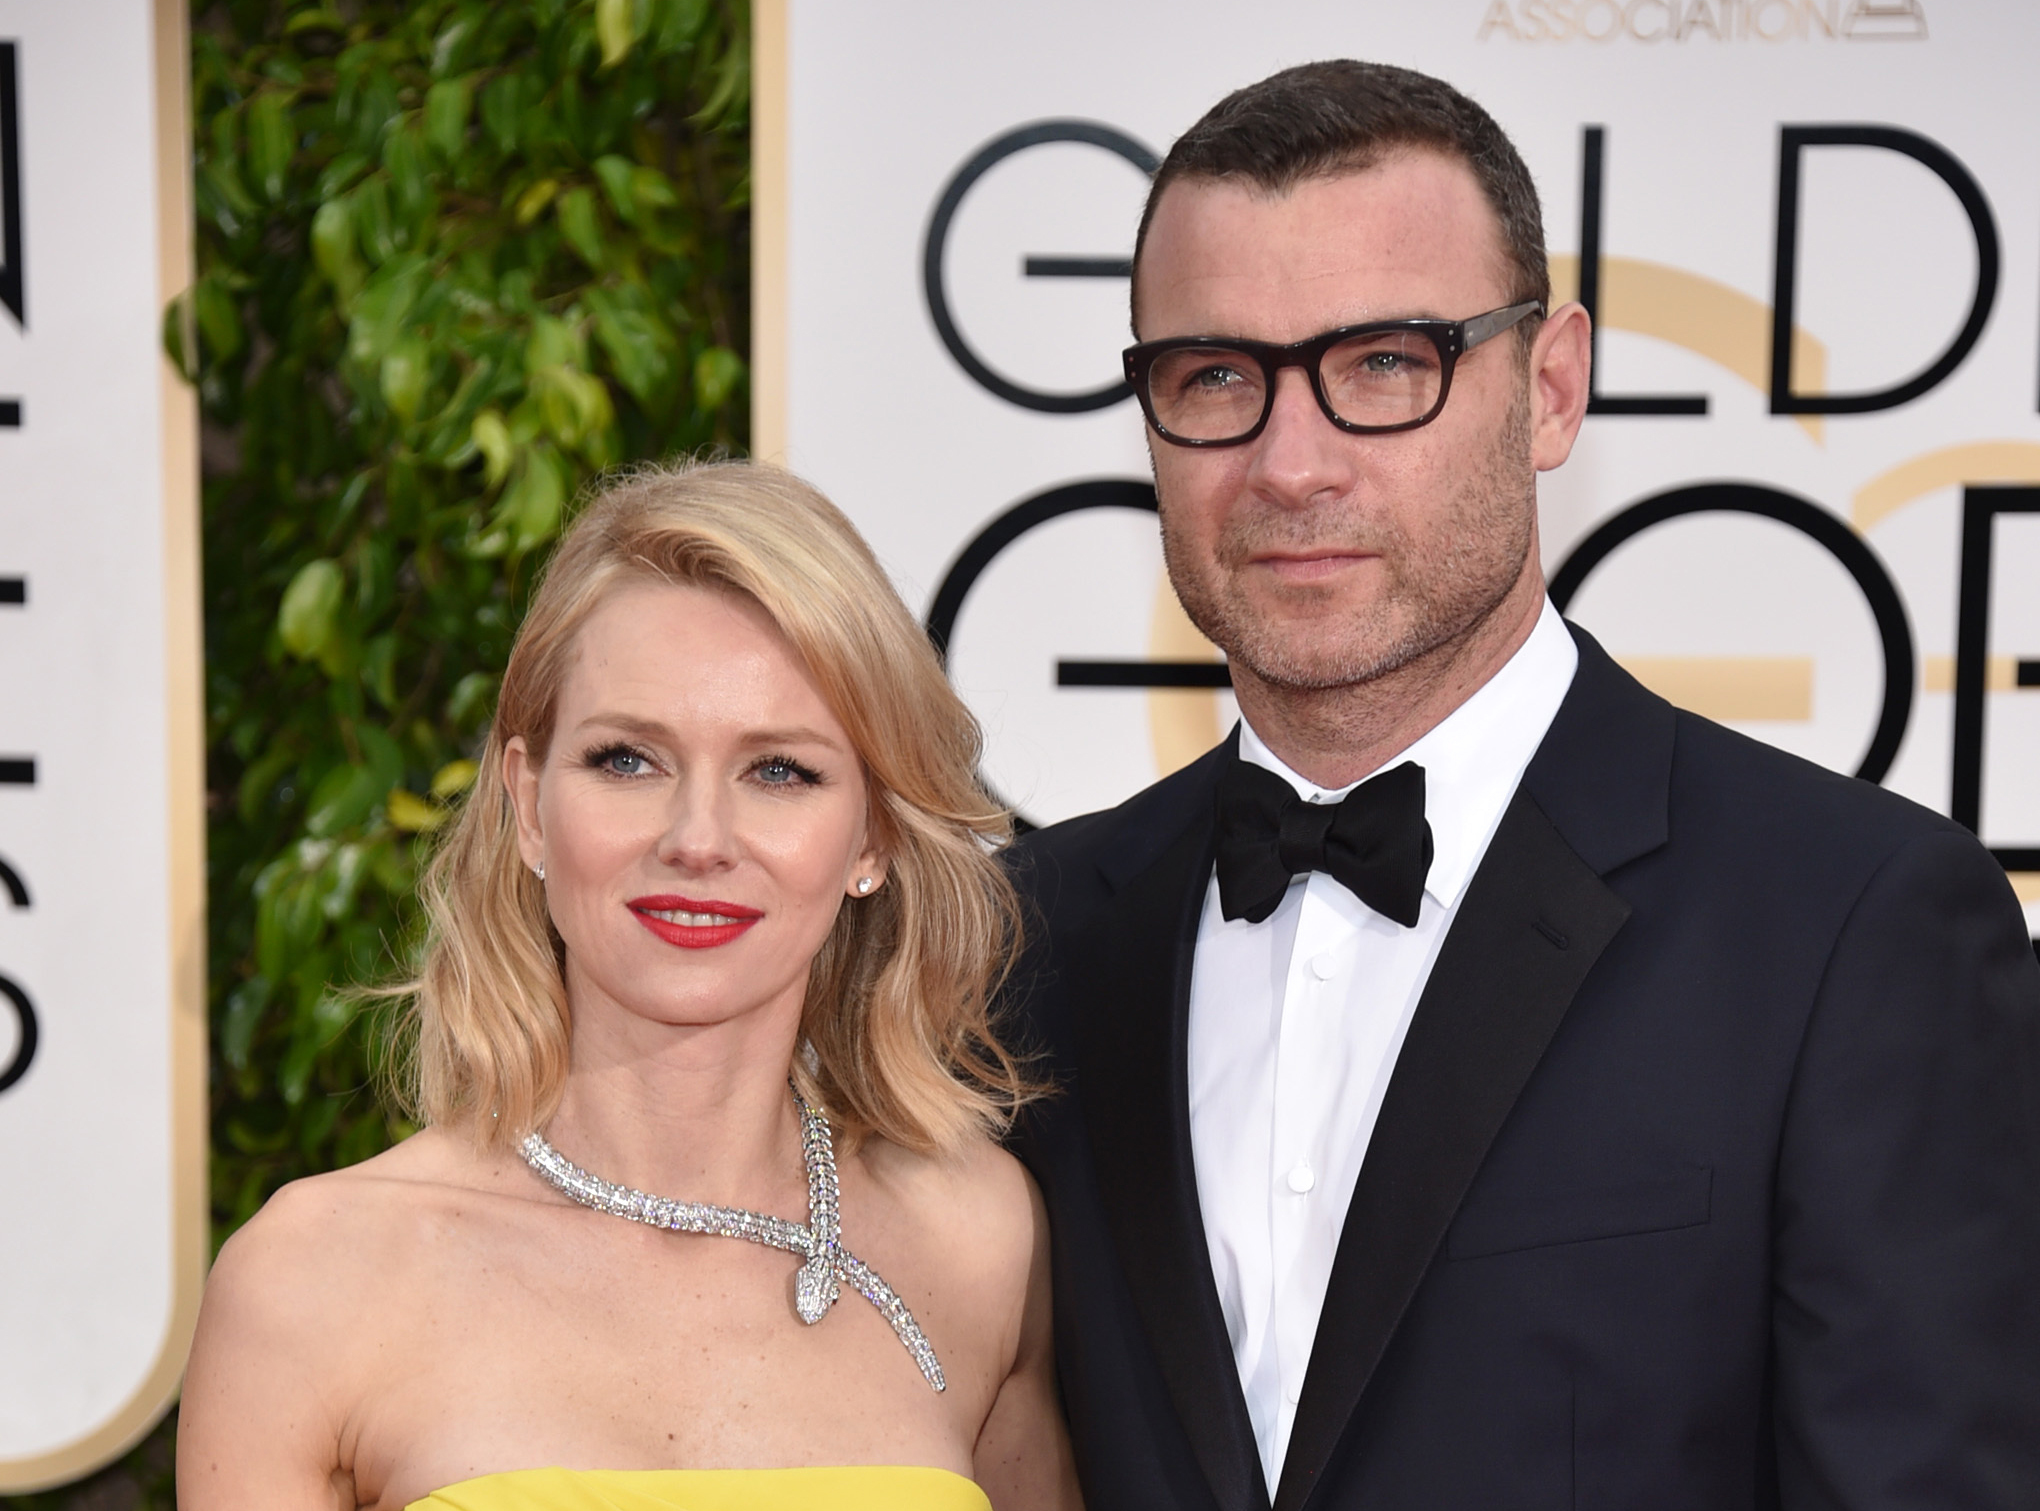 Liev Schreiber, Naomi Watts separating after 11 years | WTOP